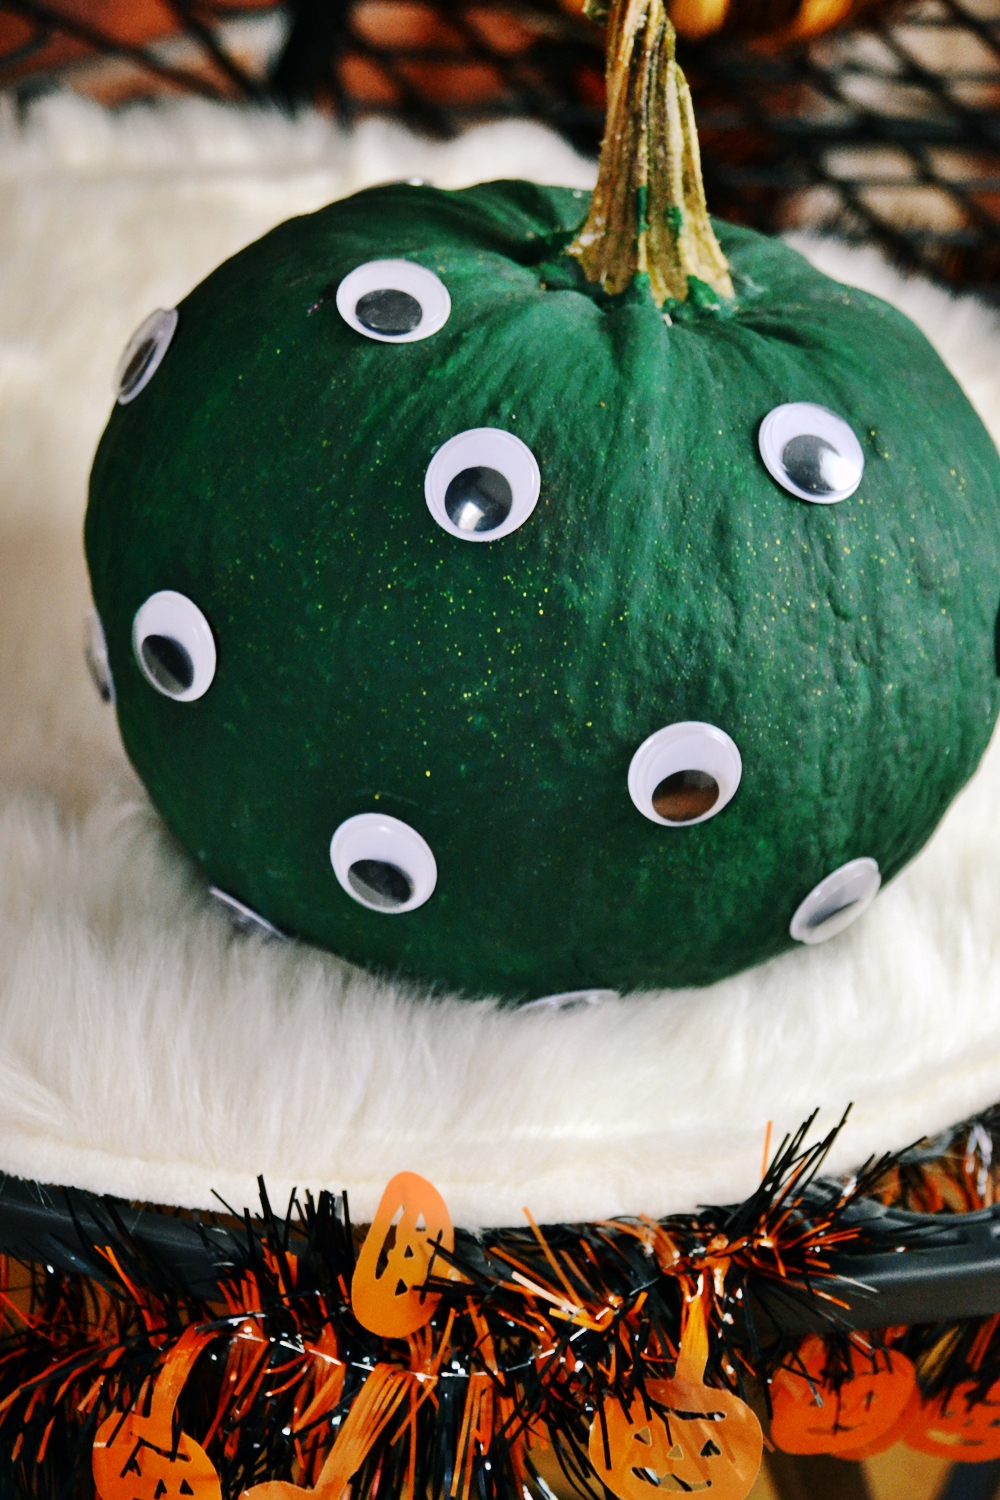 10 Einfache Diy Dekoideen Für Halloween Julia To The Fullest